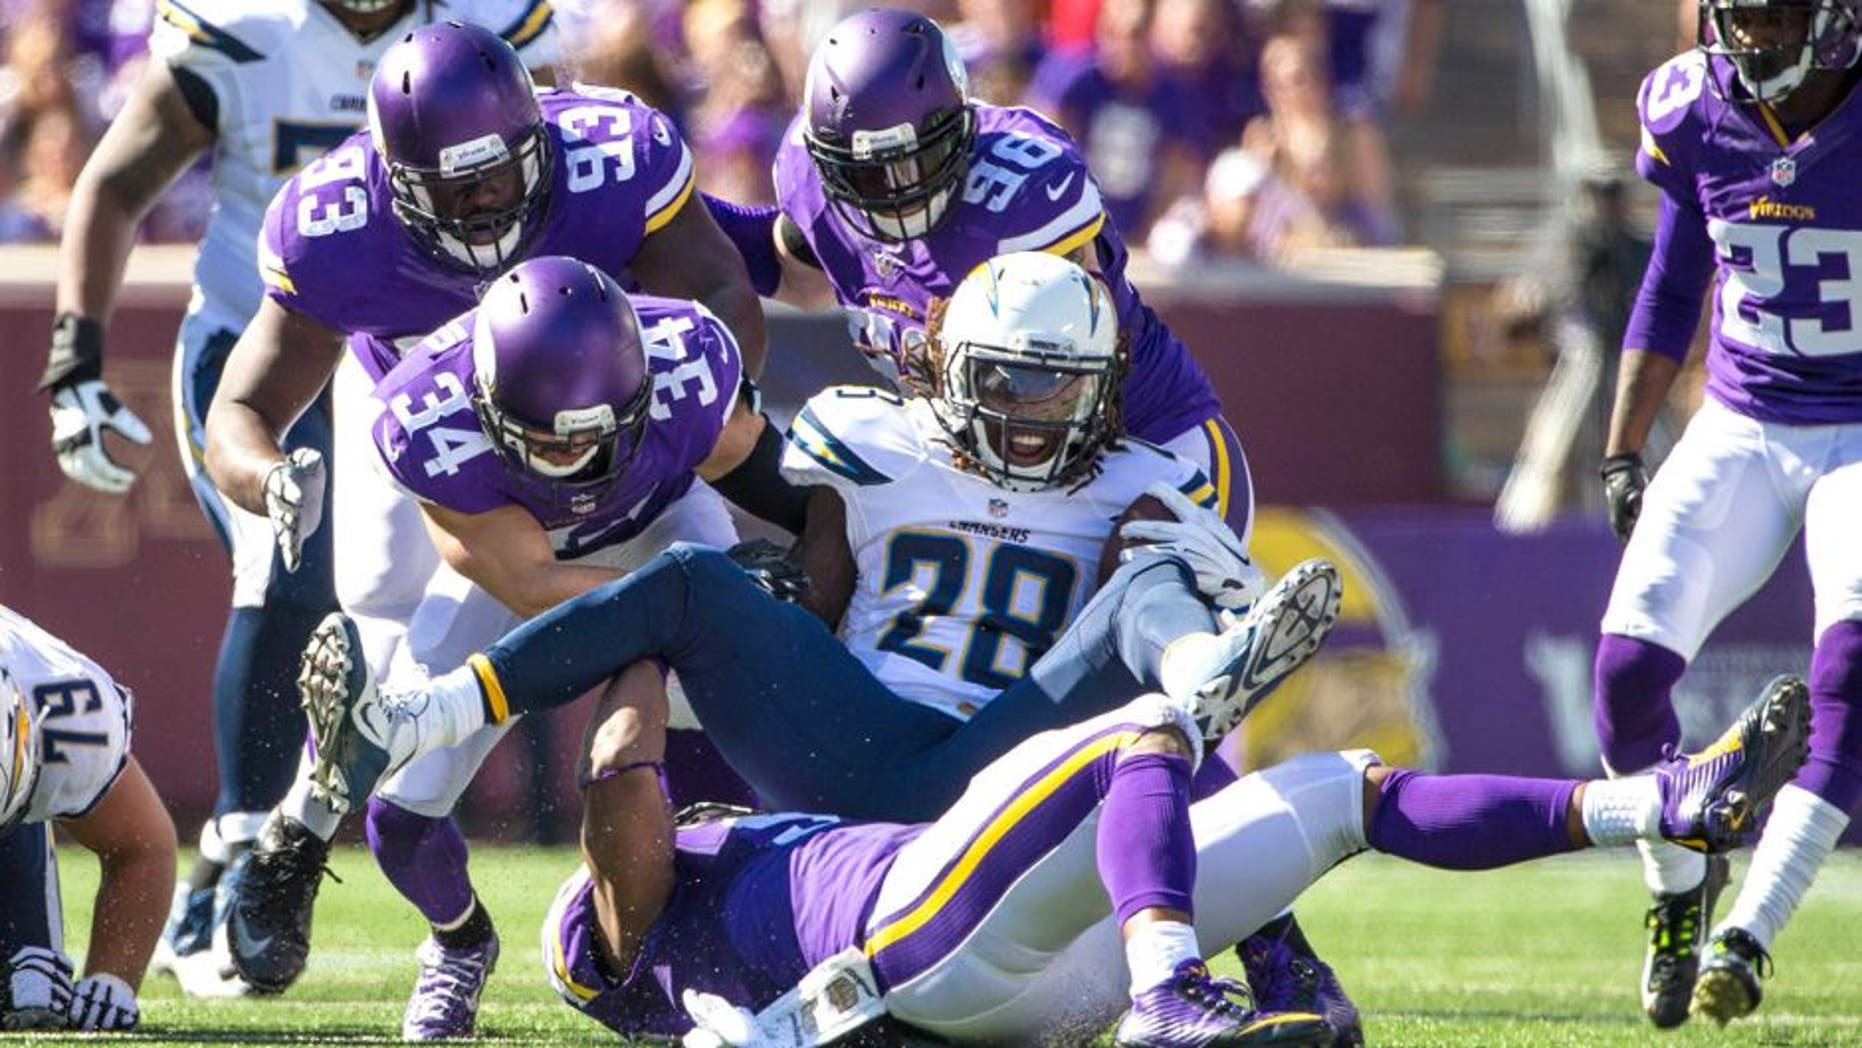 Sep 27, 2015; Minneapolis, MN, USA; San Diego Chargers running back Melvin Gordon (28) is tackled by Minnesota Vikings safety Andrew Sendejo (34) during the third quarter at TCF Bank Stadium. The Vikings defeated the Chargers 31-14. Mandatory Credit: Brace Hemmelgarn-USA TODAY Sports